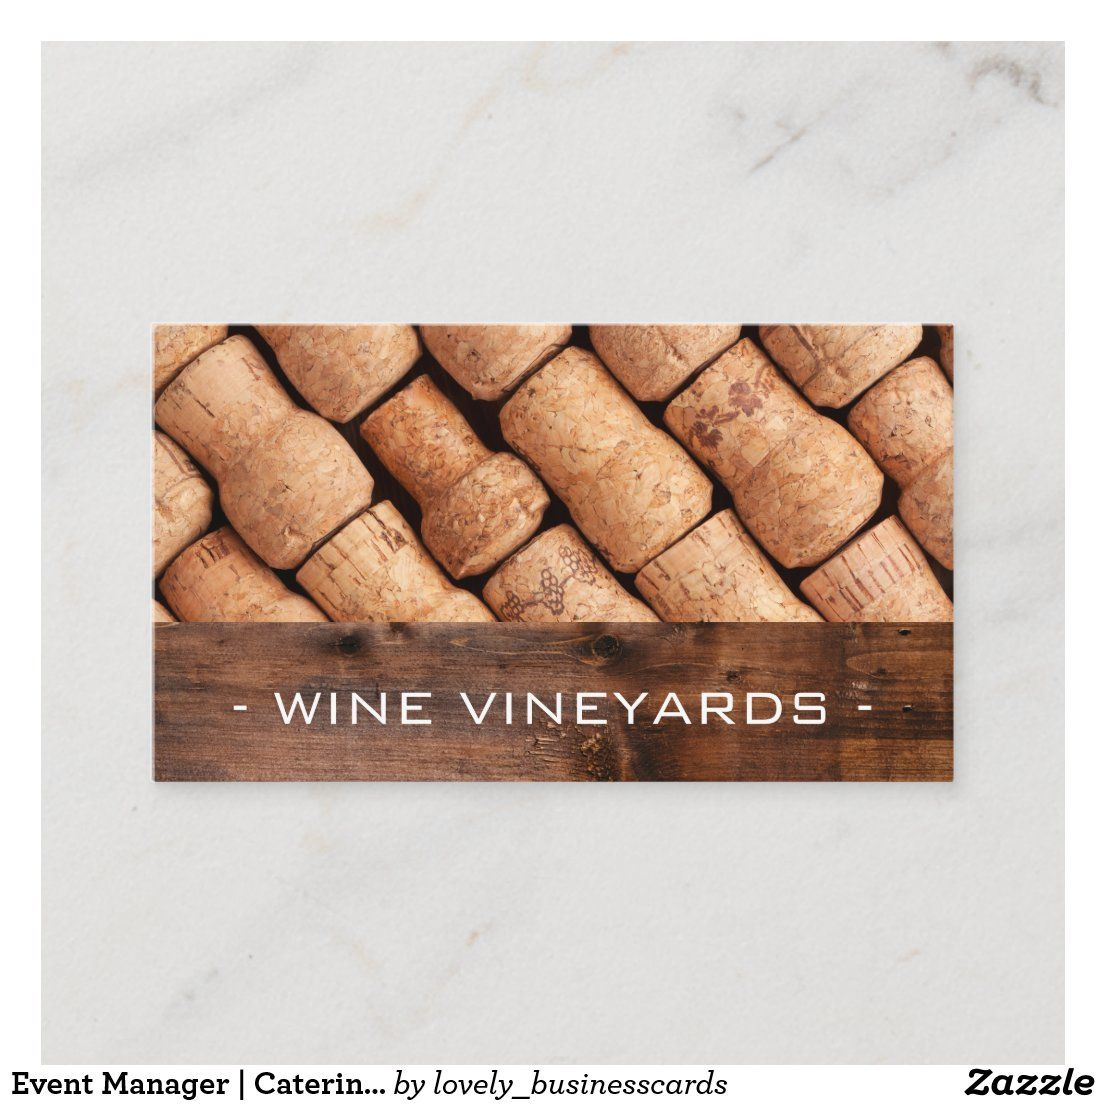 Event Manager | Catering Services | Winery Business Card | Zazzle.com